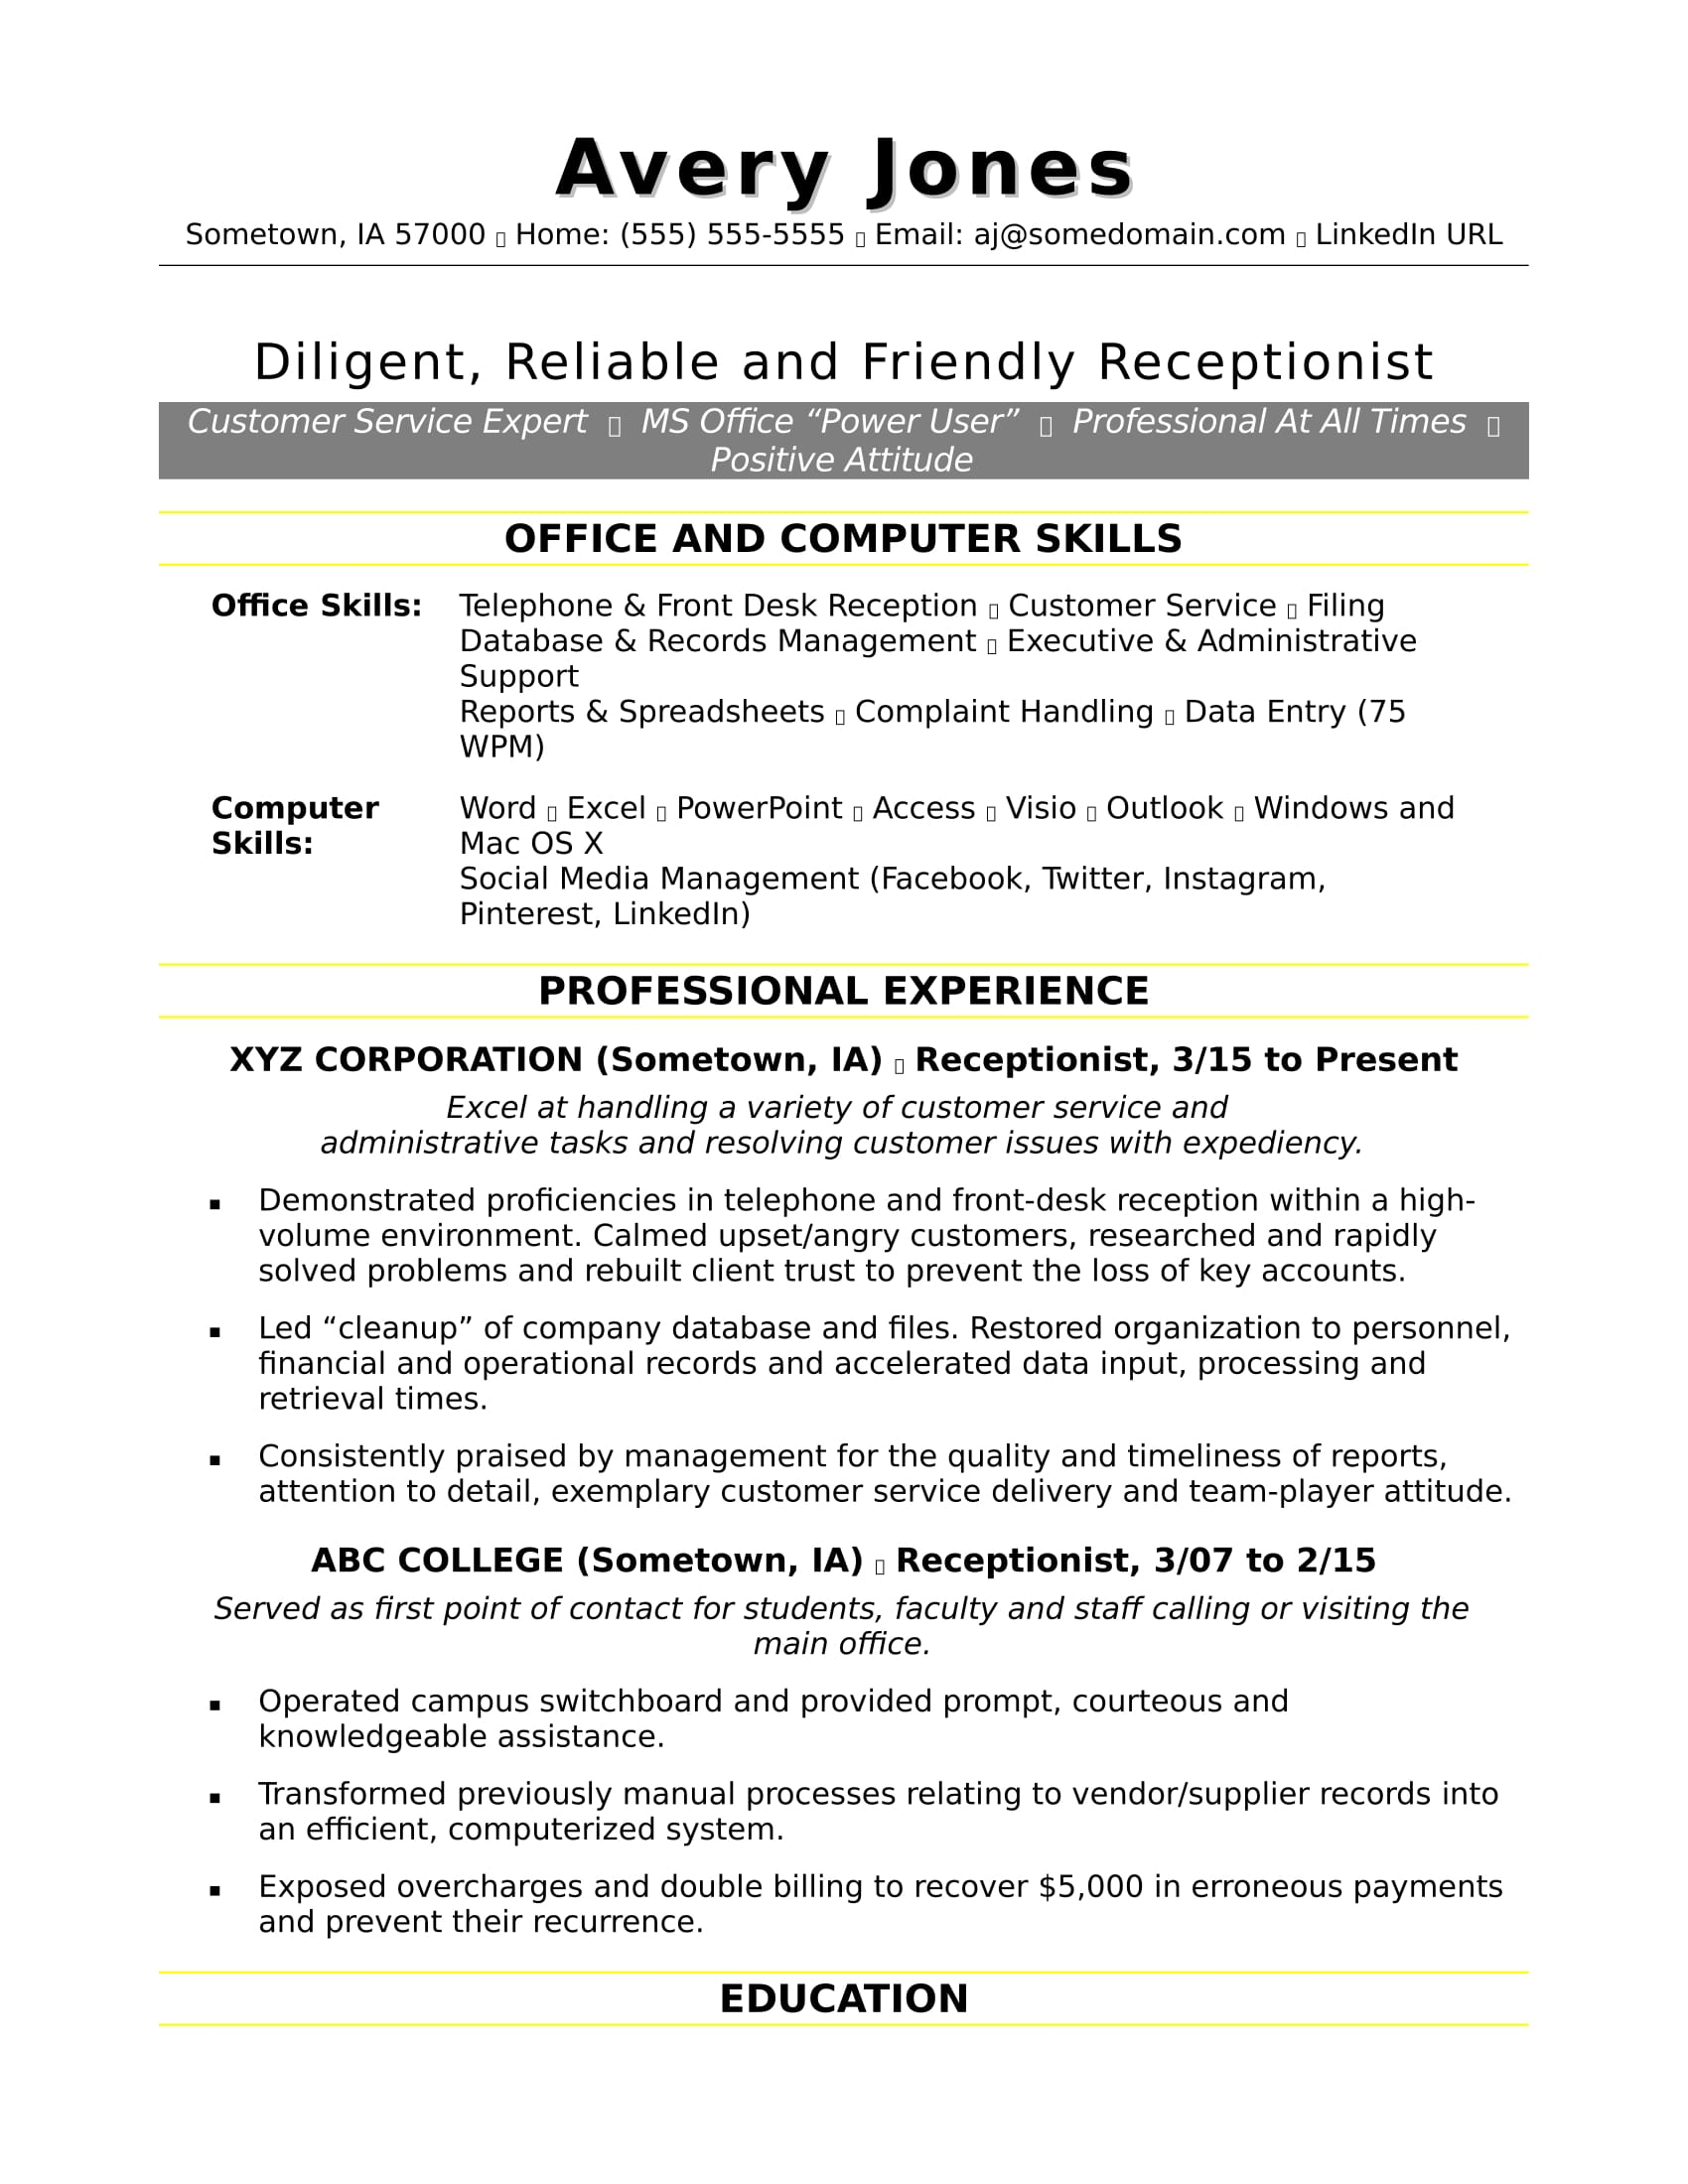 Sample Resume For A Receptionist  Resume Excel Skills